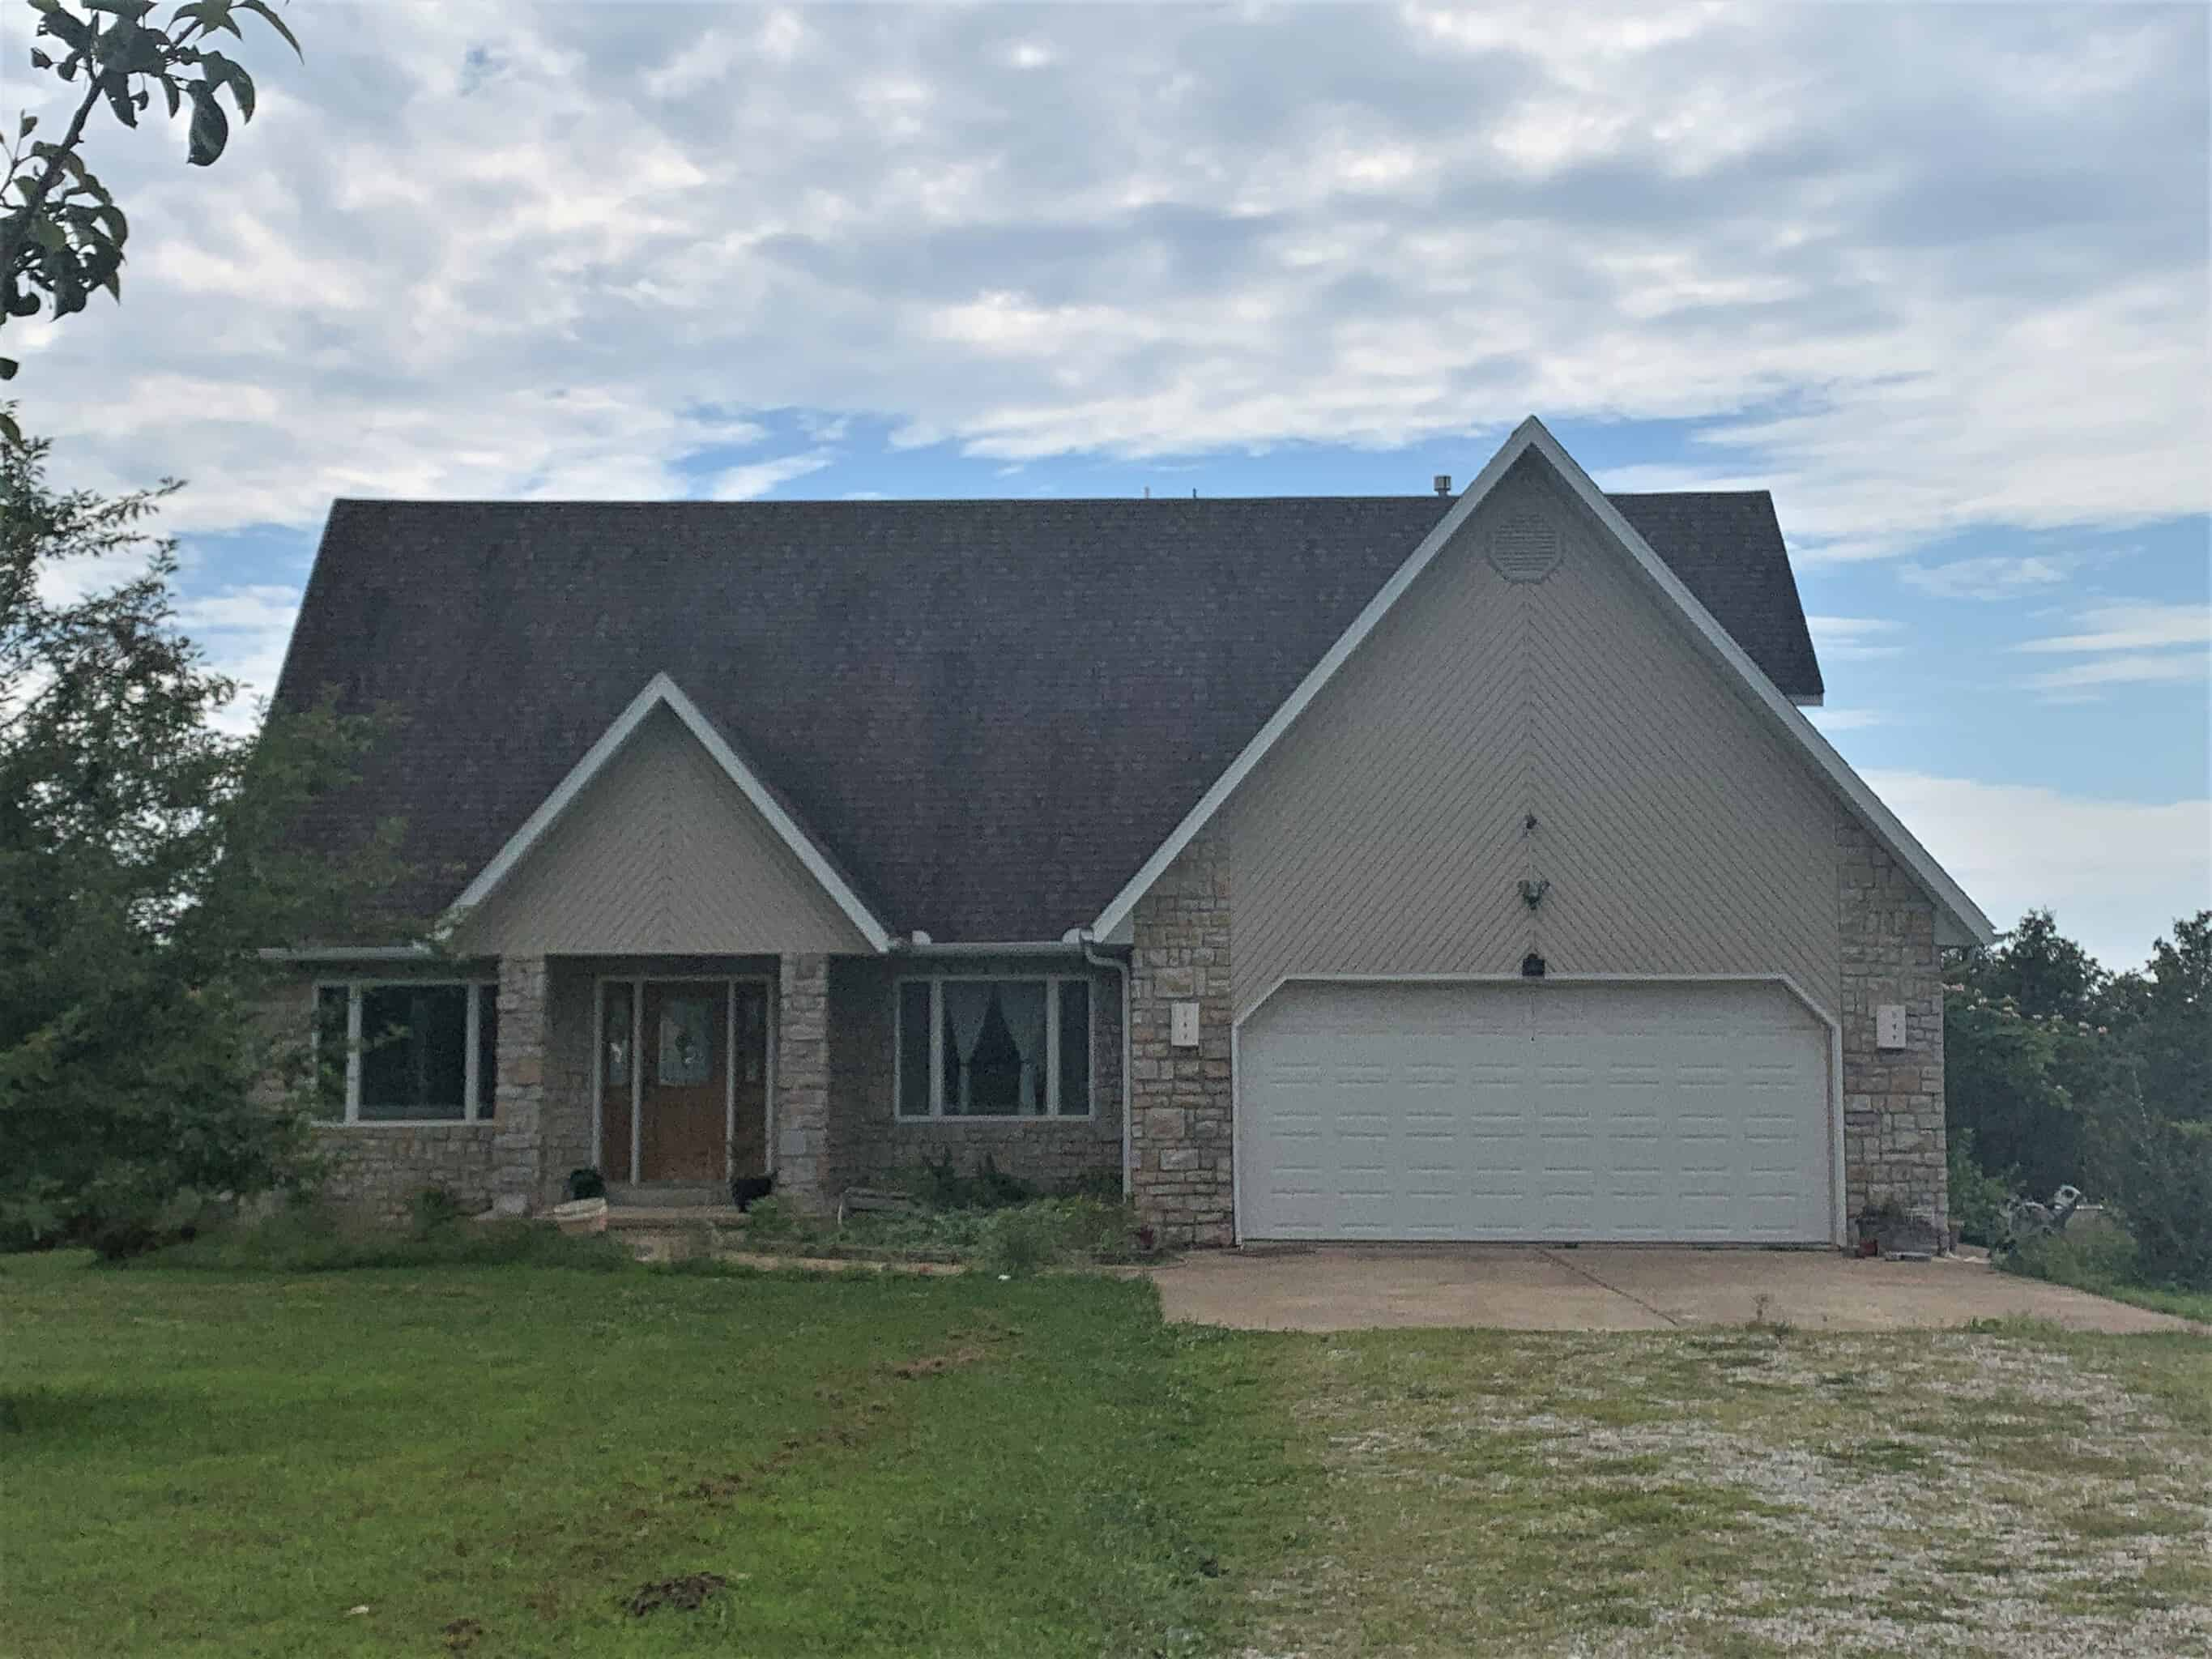 Home on Acreage for Sale in the Southern MO Ozarks